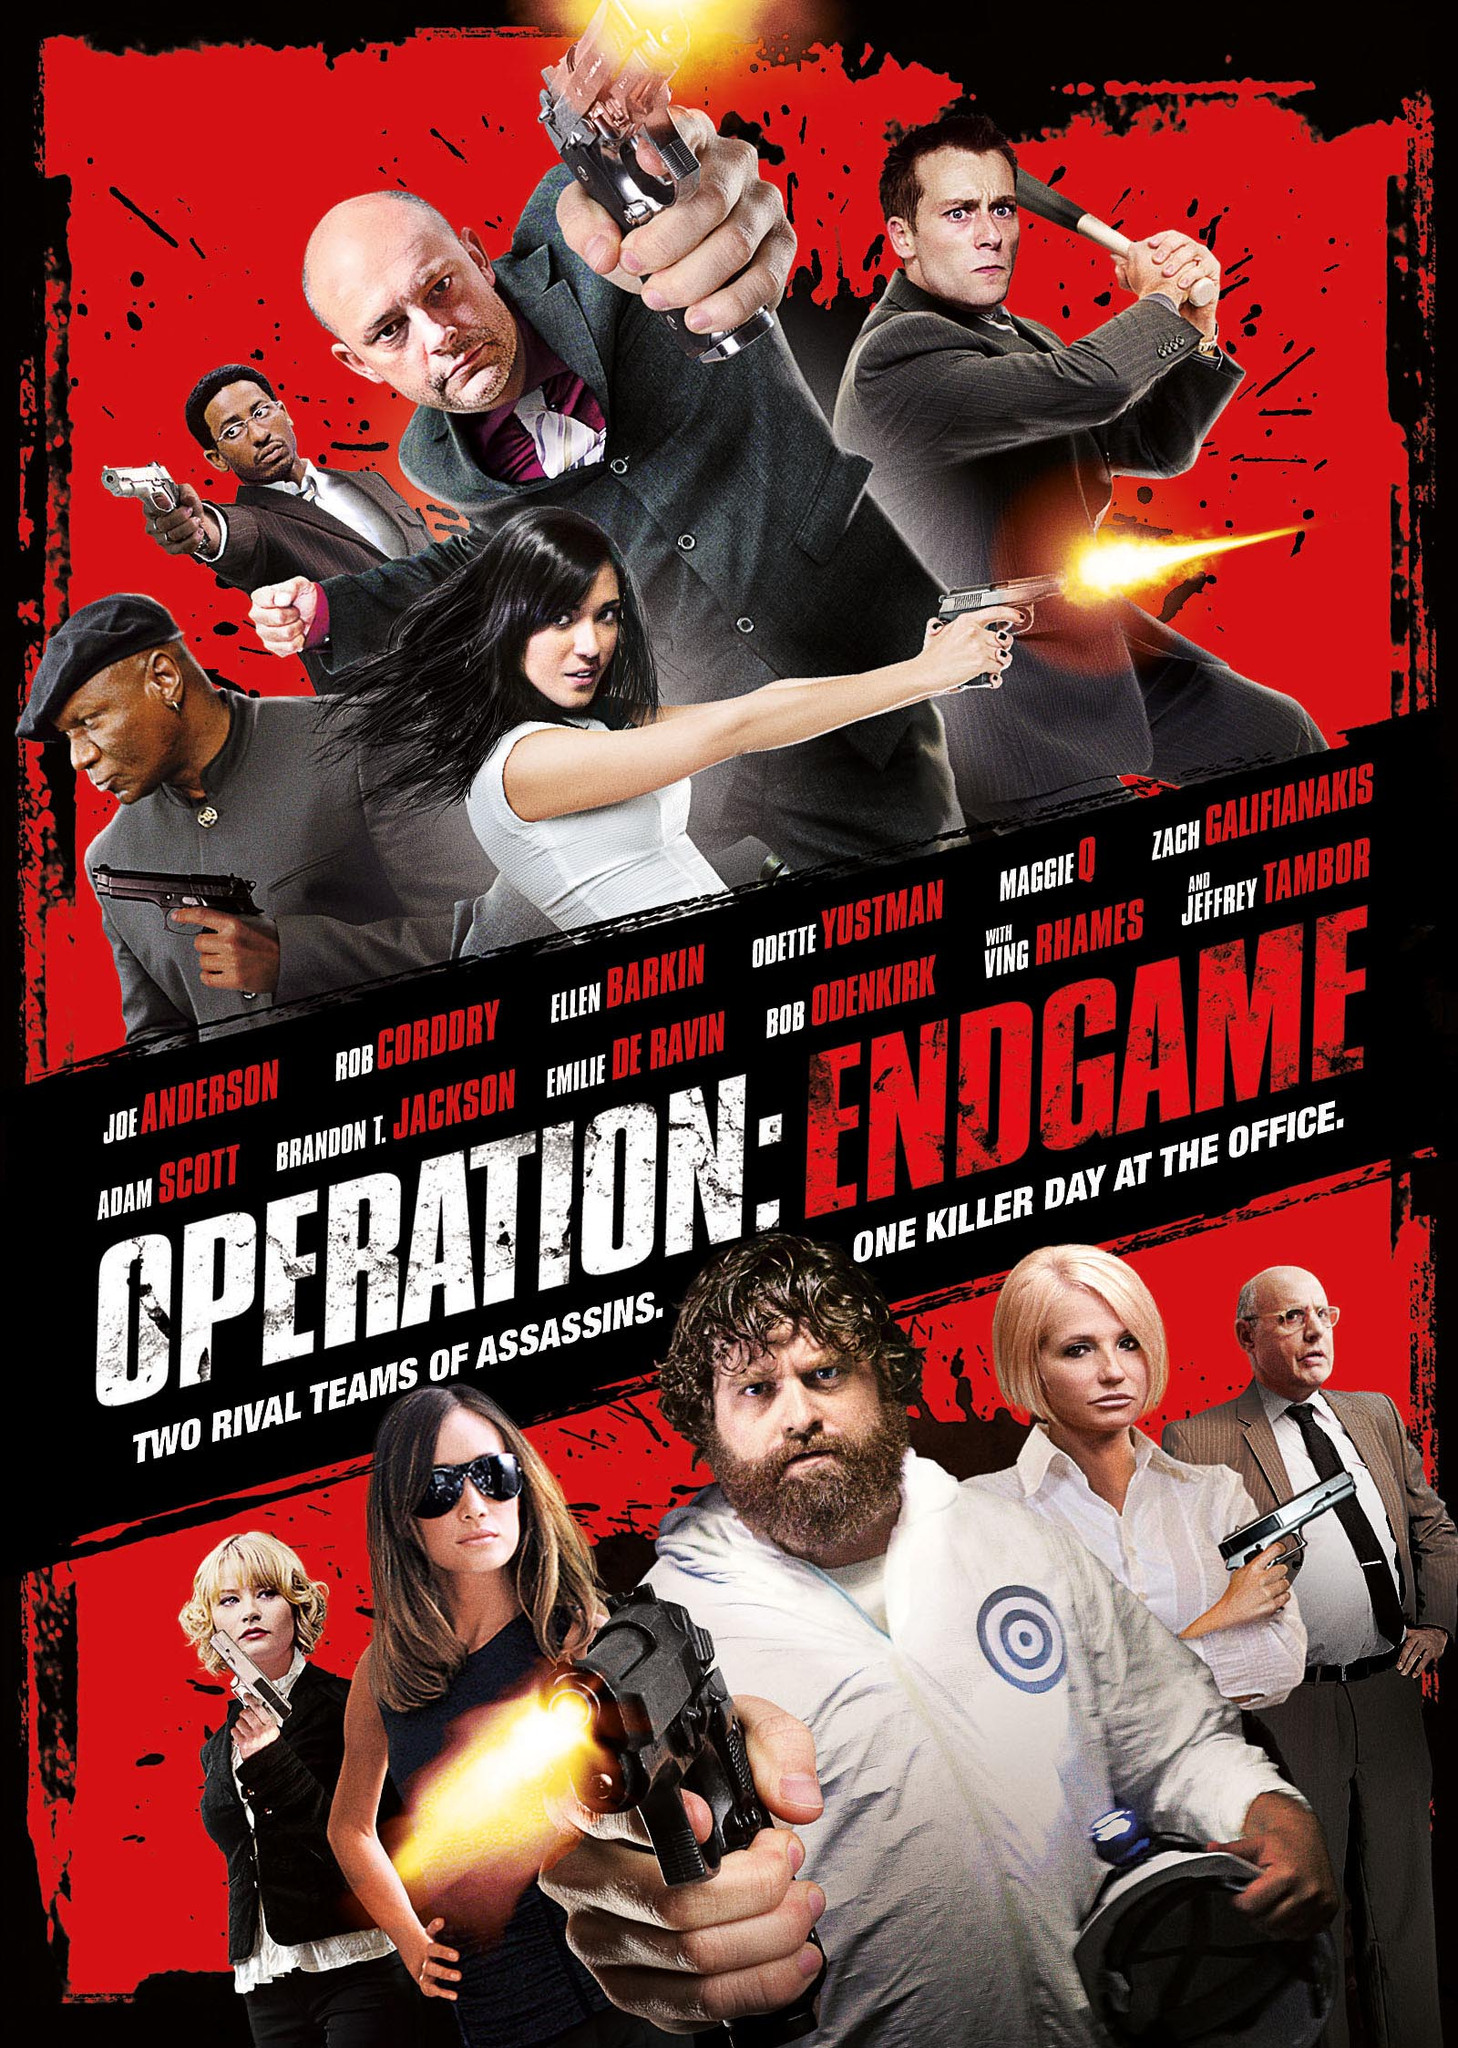 Operation: Endgame (2010) - IMDb